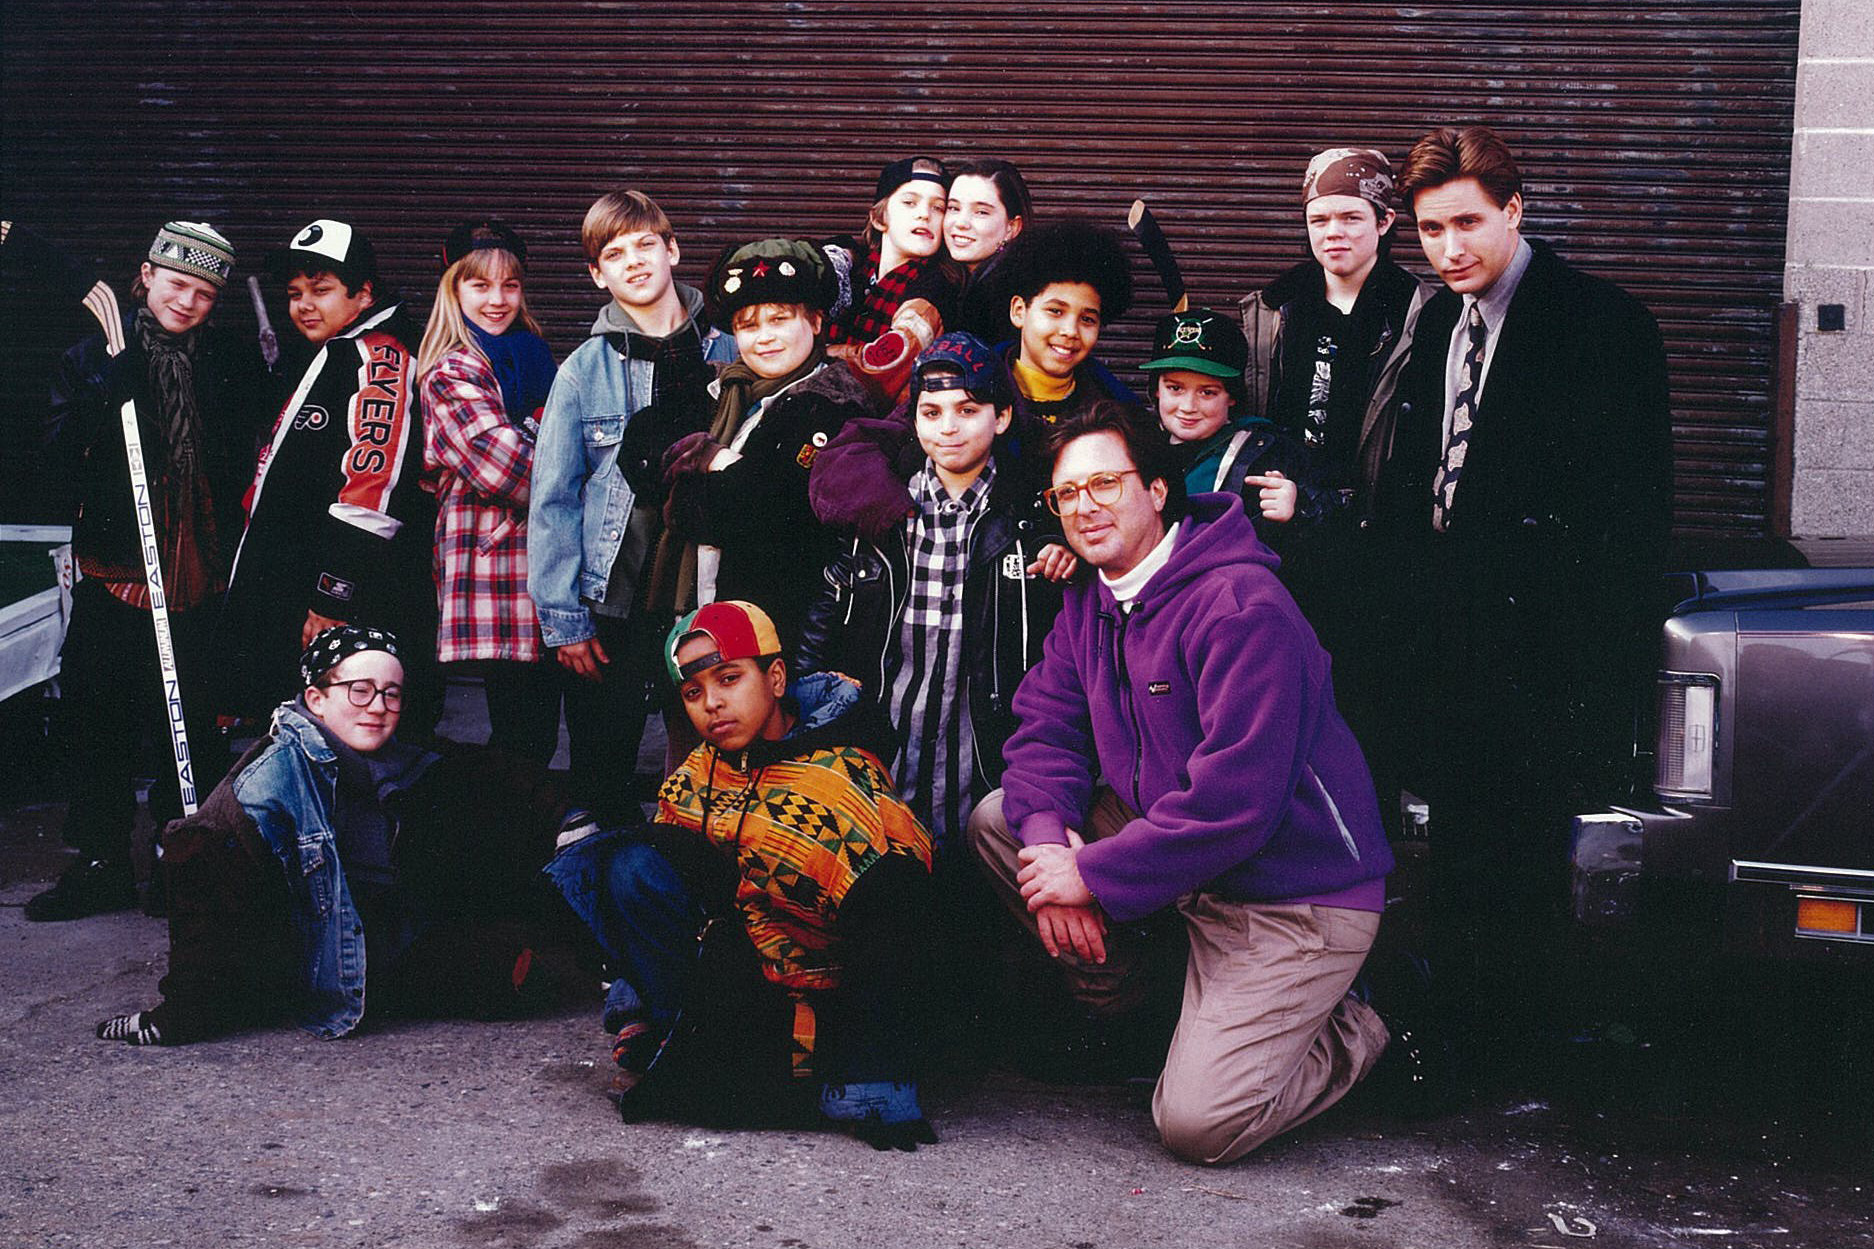 The cast of the first 'Mighty Ducks' films with producer Jordan Kerner (kneeling).